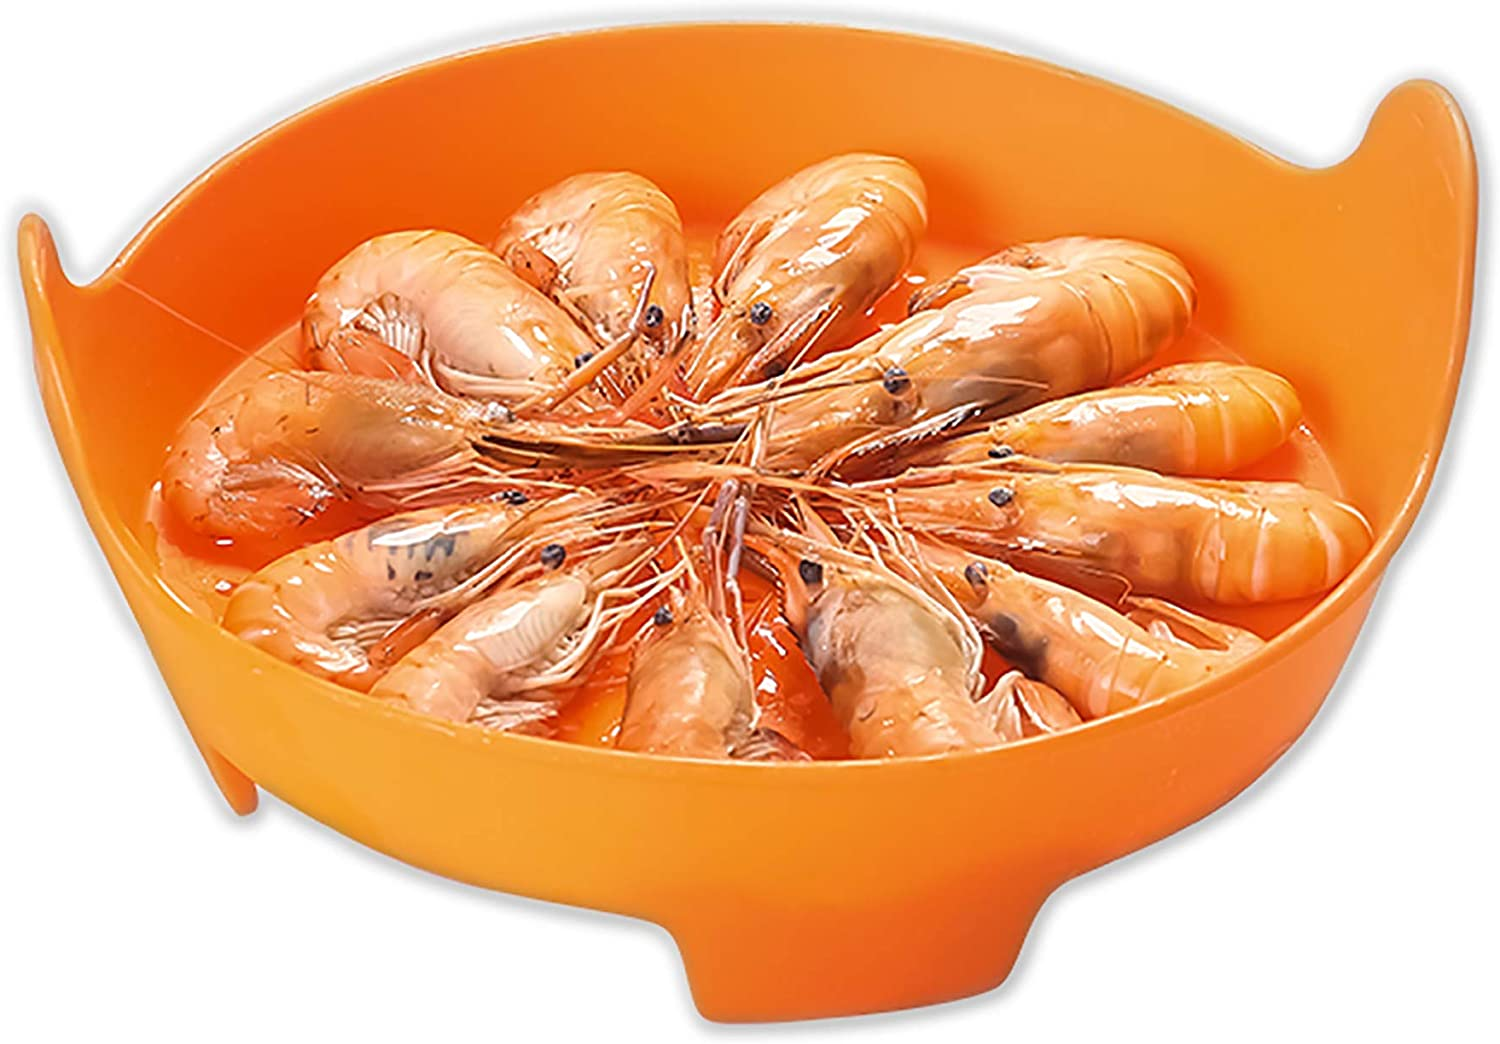 Liflicon Silicone Vegetable/Food Steamer Basket with Handles -φ8''x3.7''-Insert for Pot, Pans, Crock Pots- Multifunctional also as a colander-Microwave and Dishwasher Safe,Heat Resistant-Orange